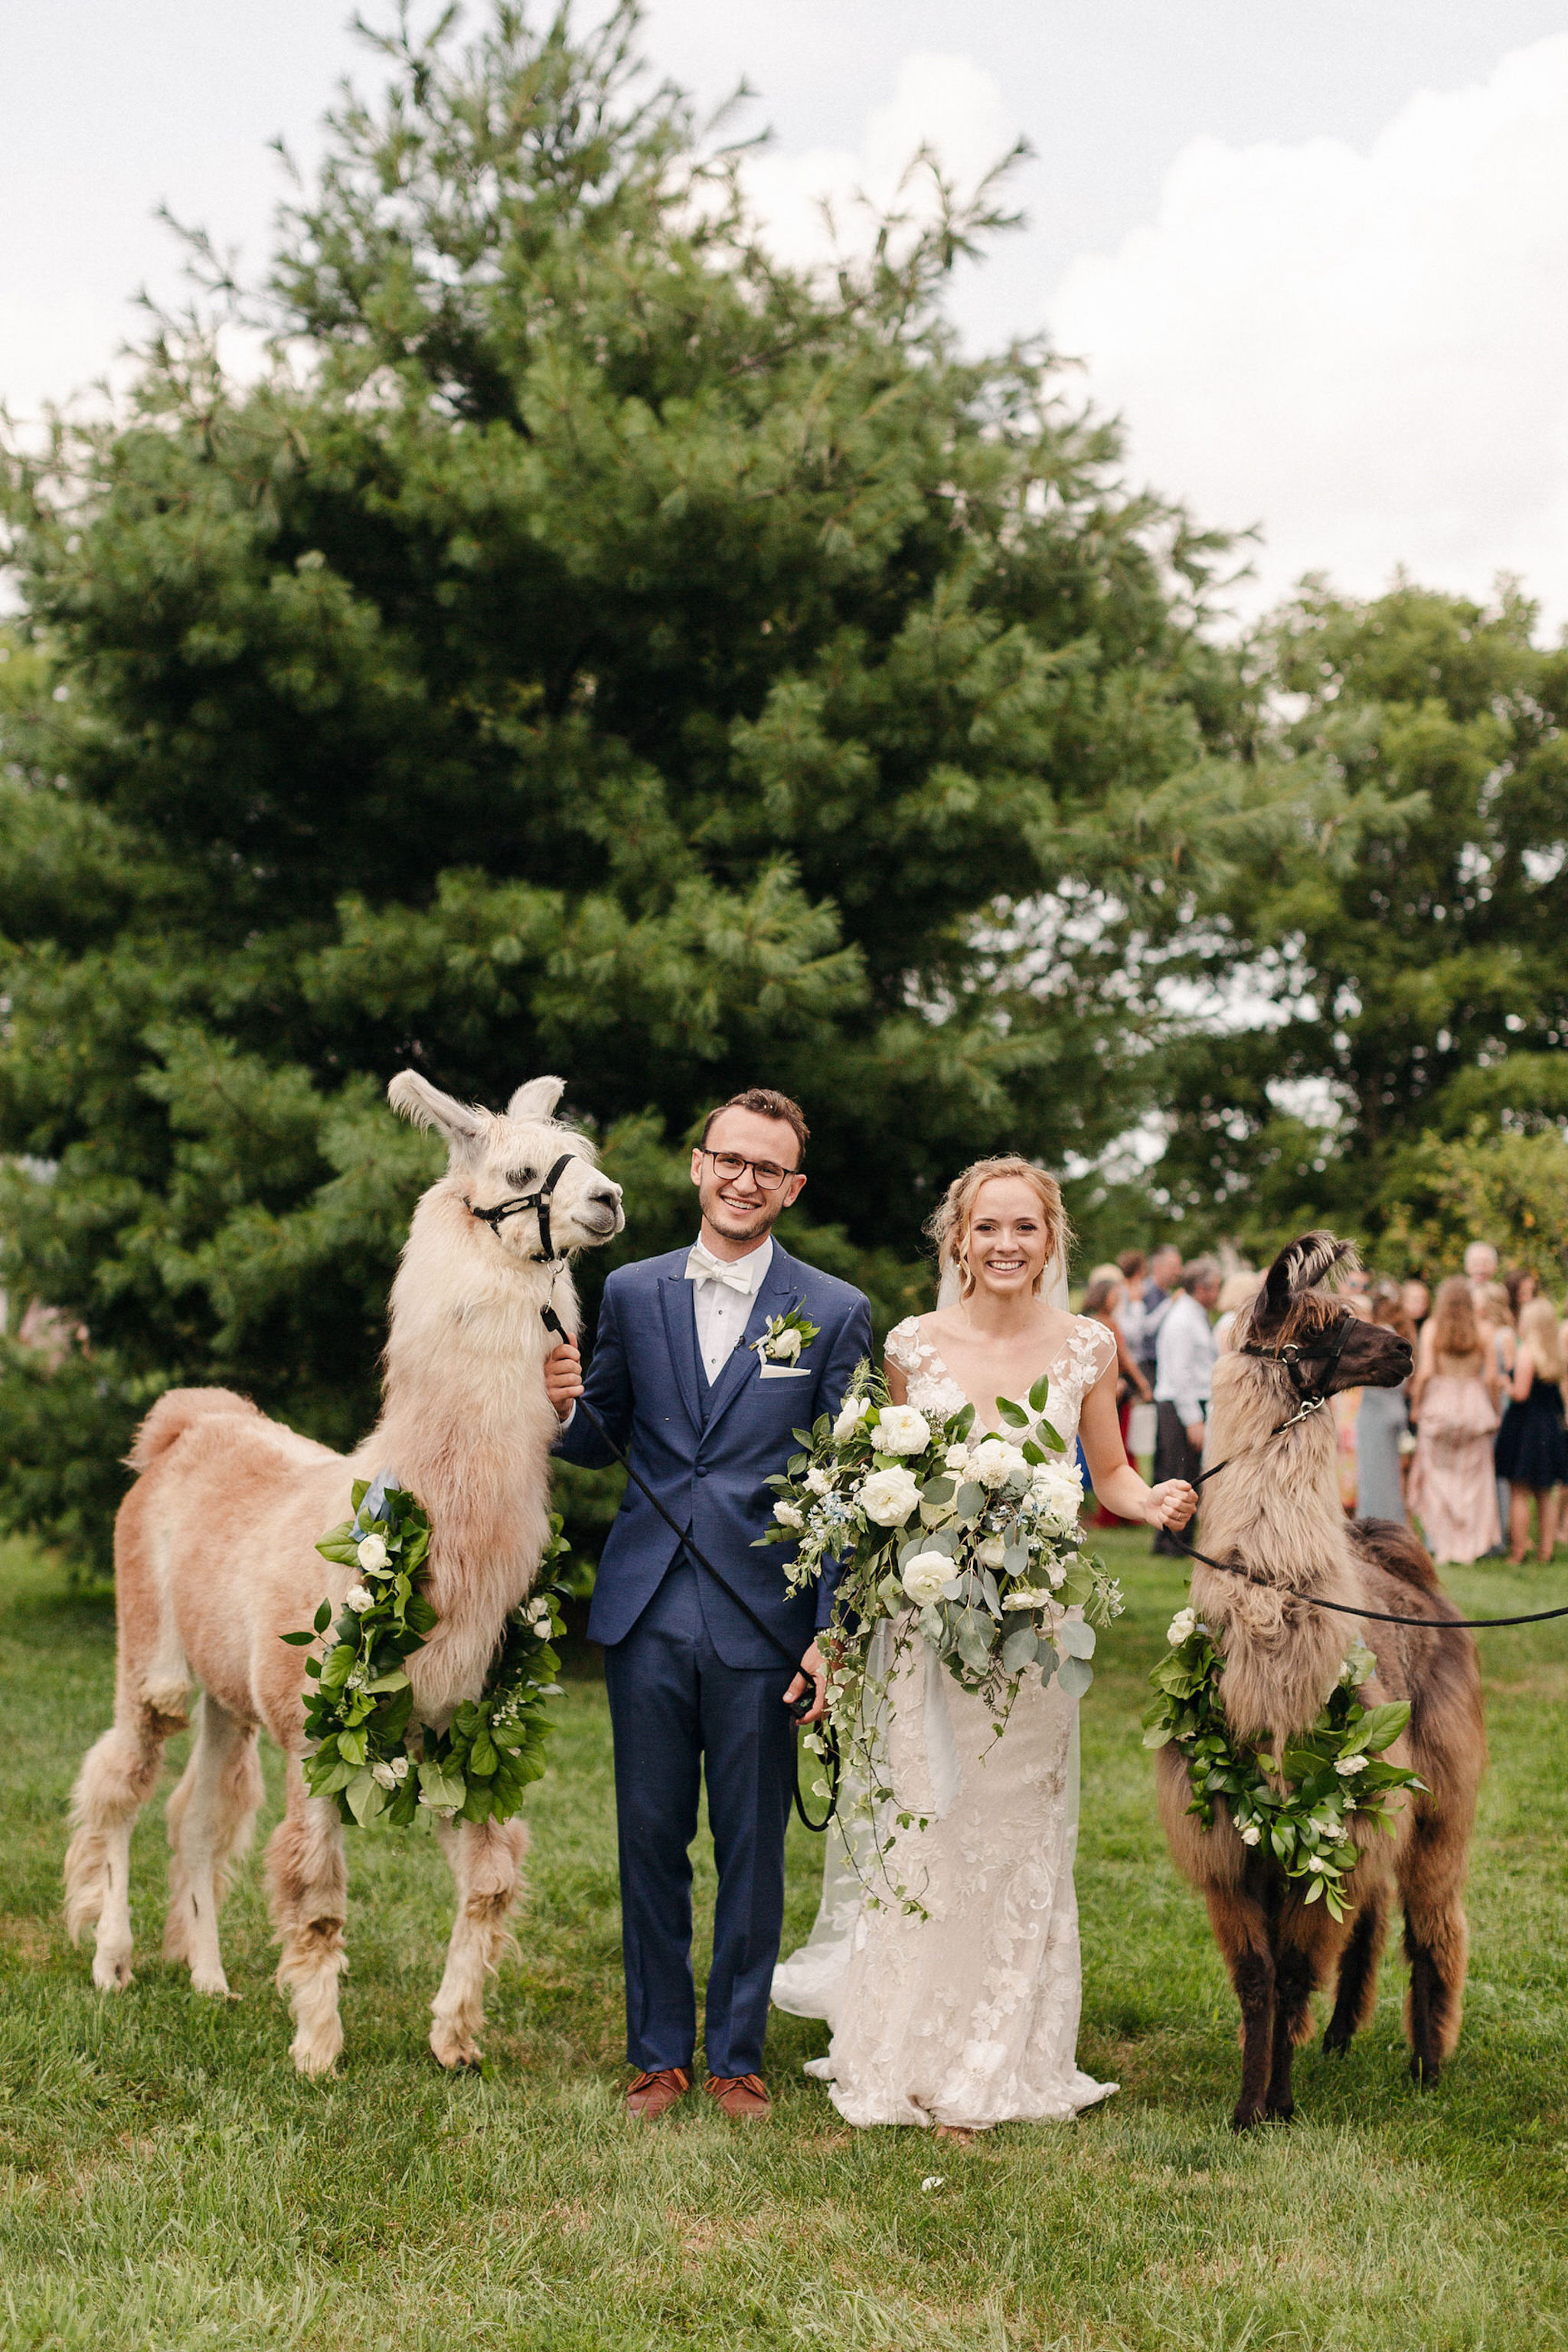 custom wedding planner ann arbor michigan event design florals bridesmaids bouquets farm outdoor ceremony llamas